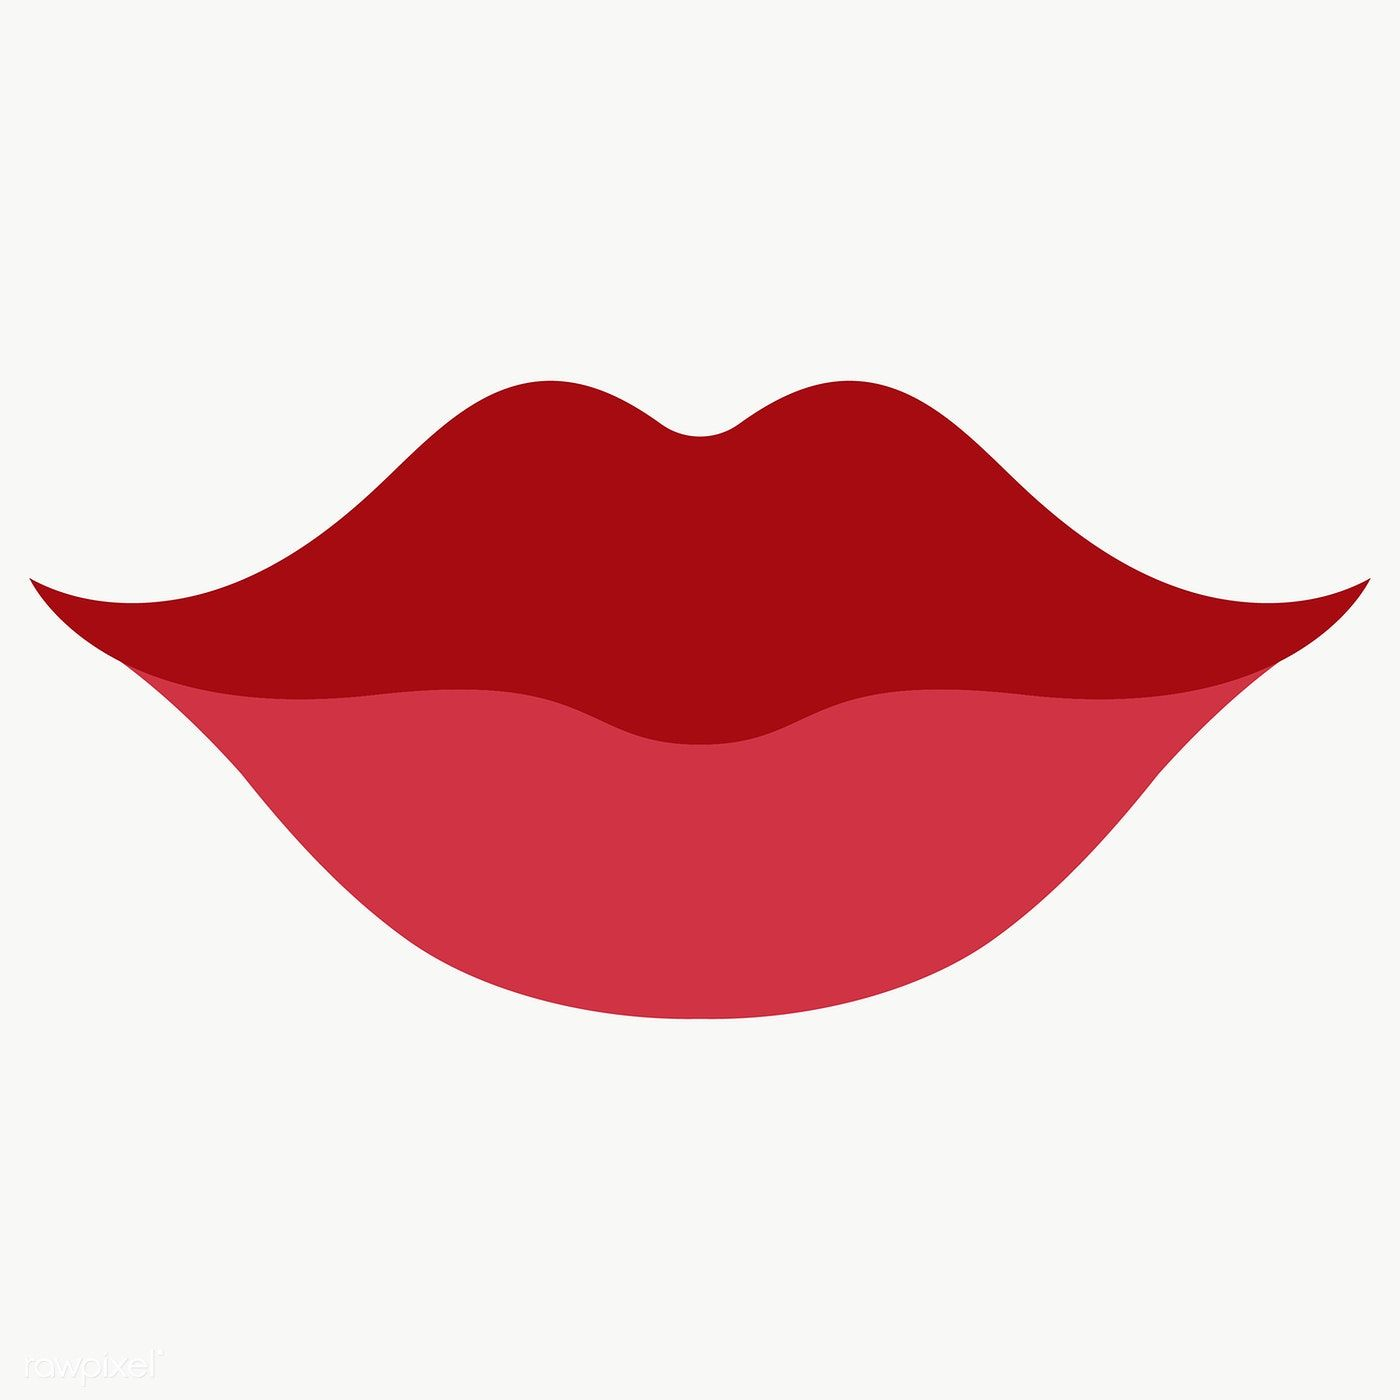 Smiling Lips Props Design Element Transparent Png Free Image By Rawpixel Com Chayanit